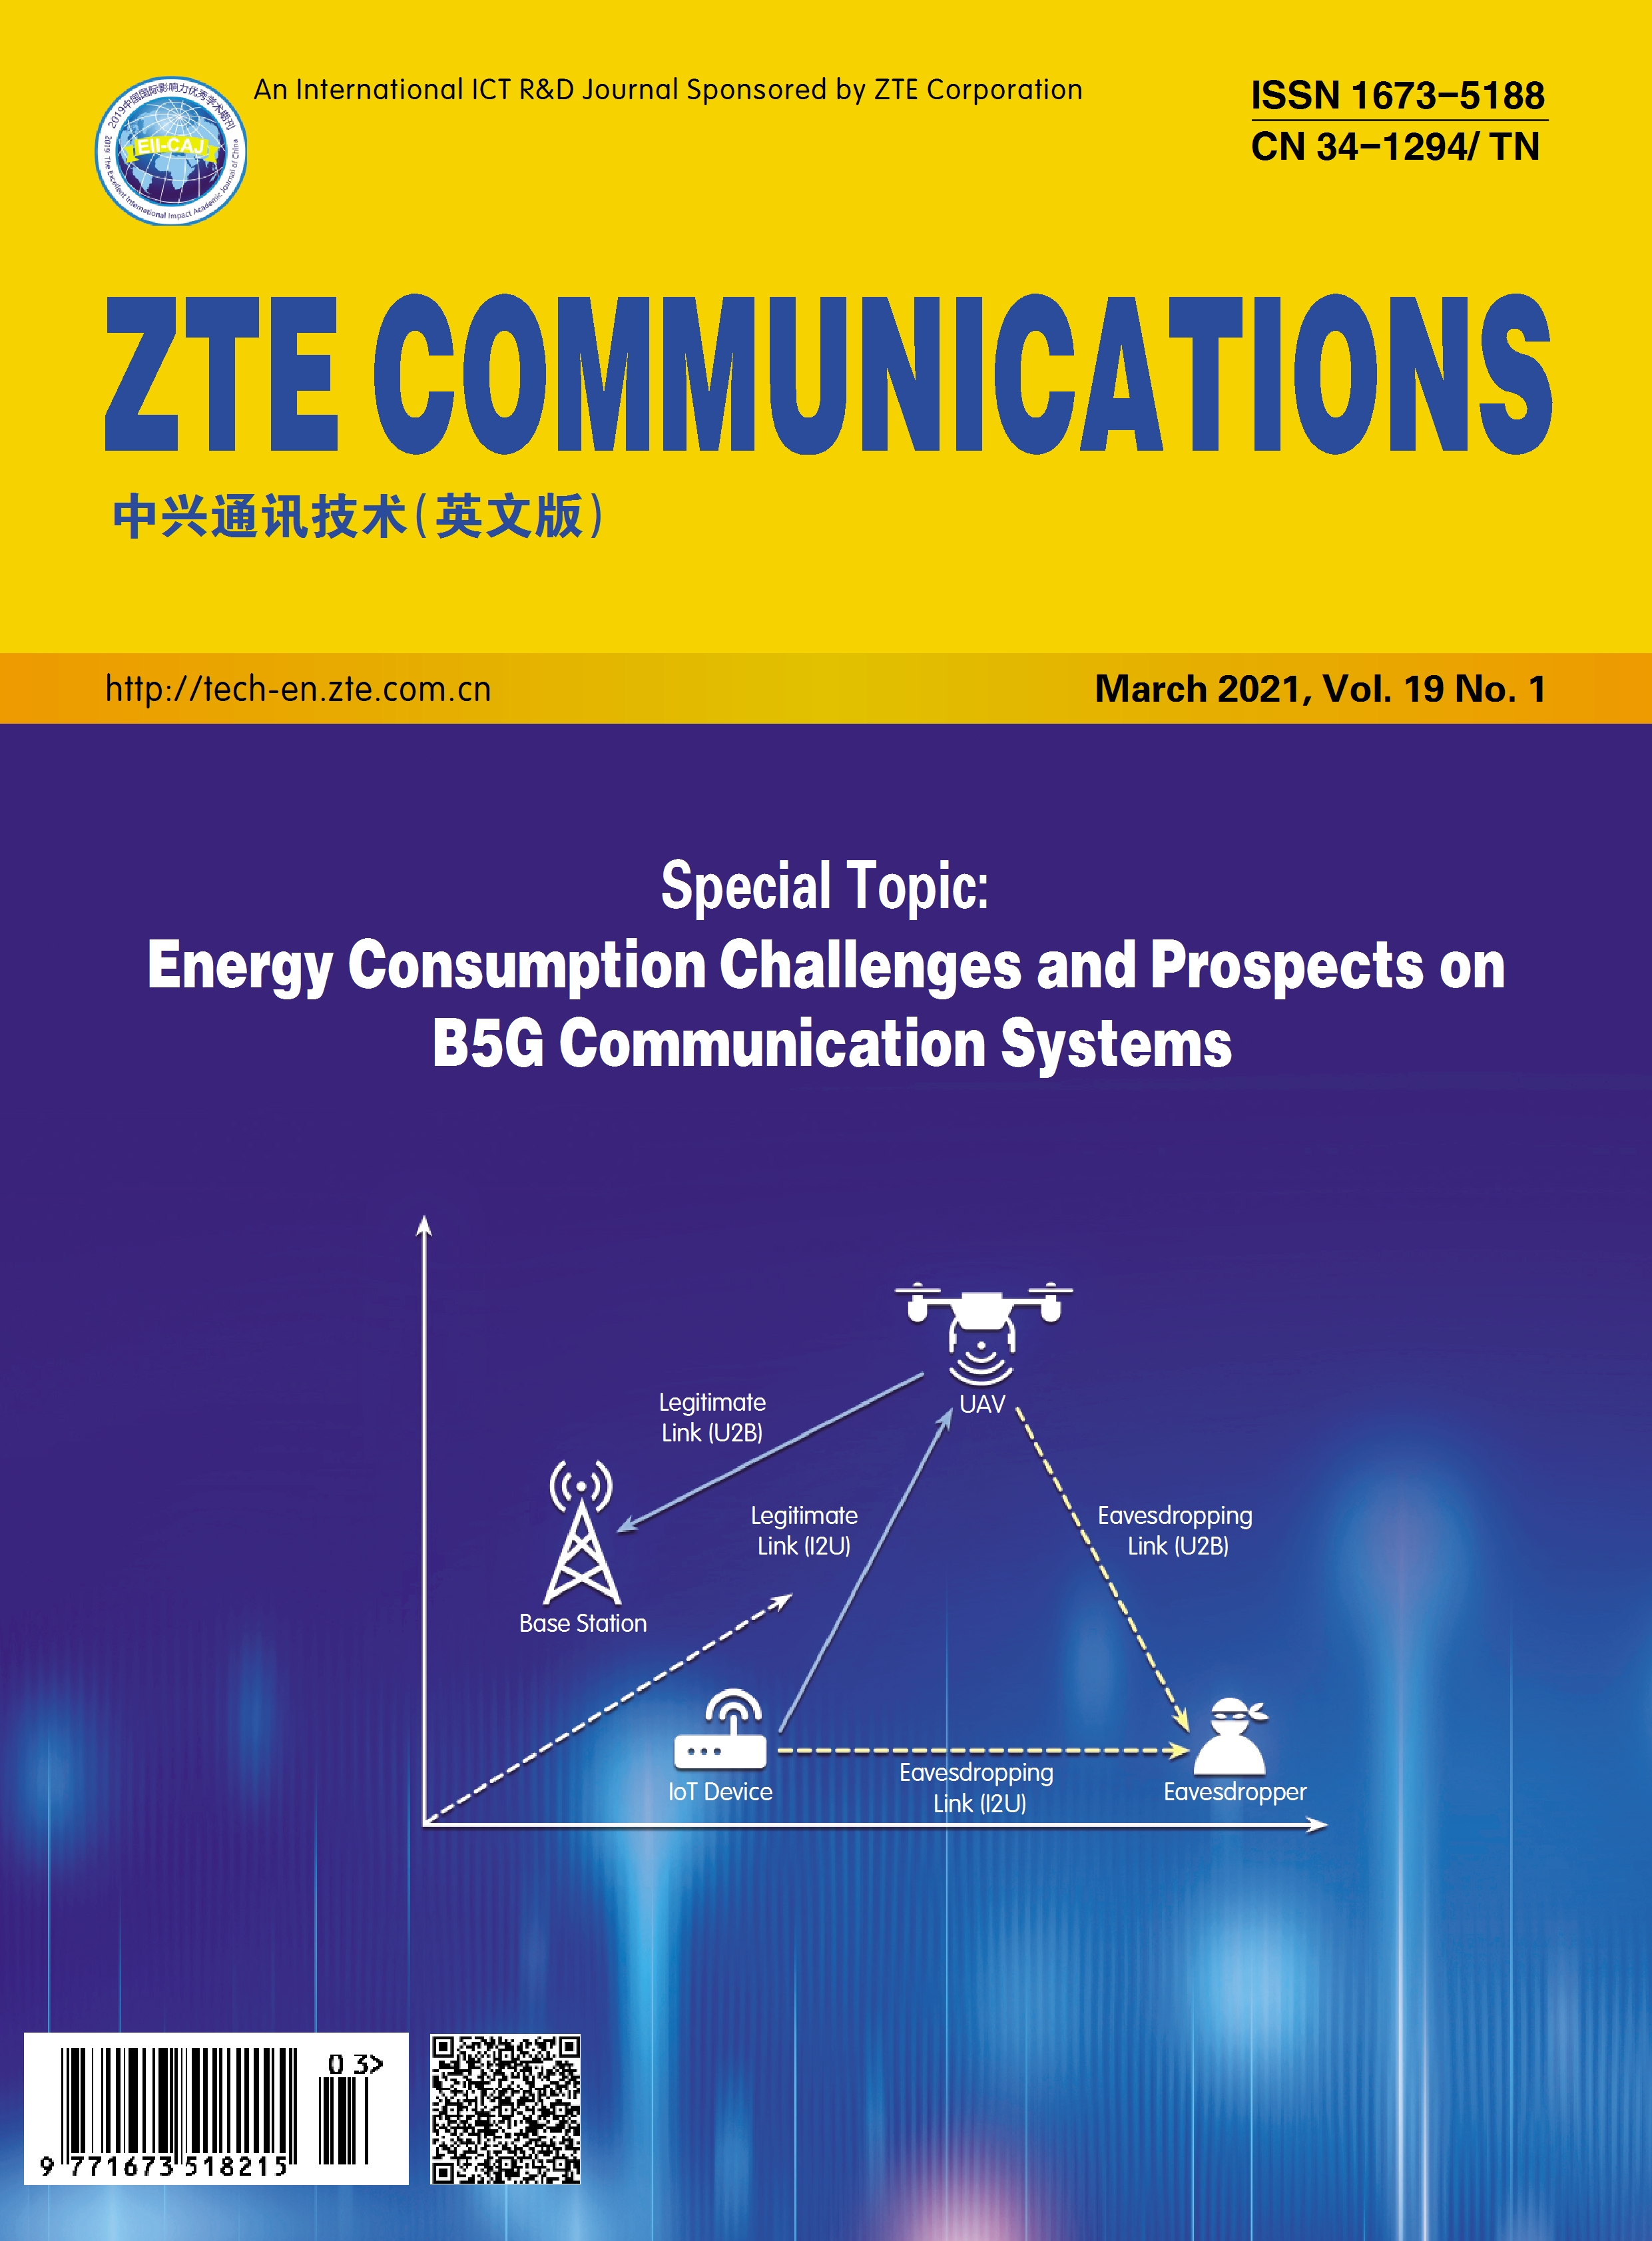 Special Topic on Energy Consumption Challenges and Prospects on B5G Communication Systems No.1 , No.73 in all volumes